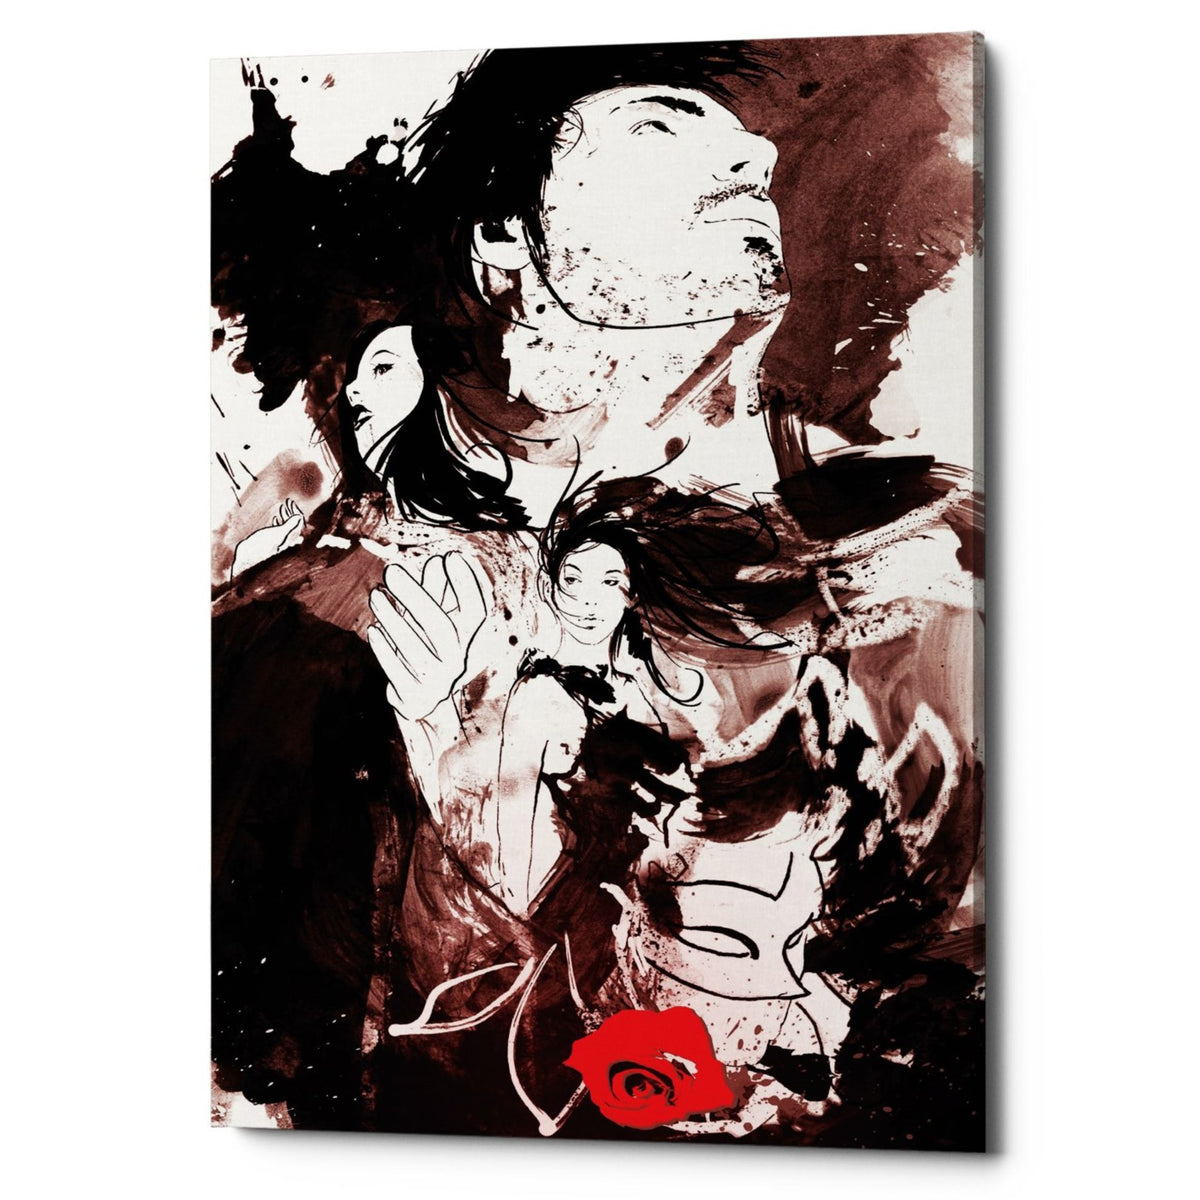 "Epic Graffiti ""Romance Revenge Revolution"" by Jonathan Lam, Giclee Canvas Wall Art"